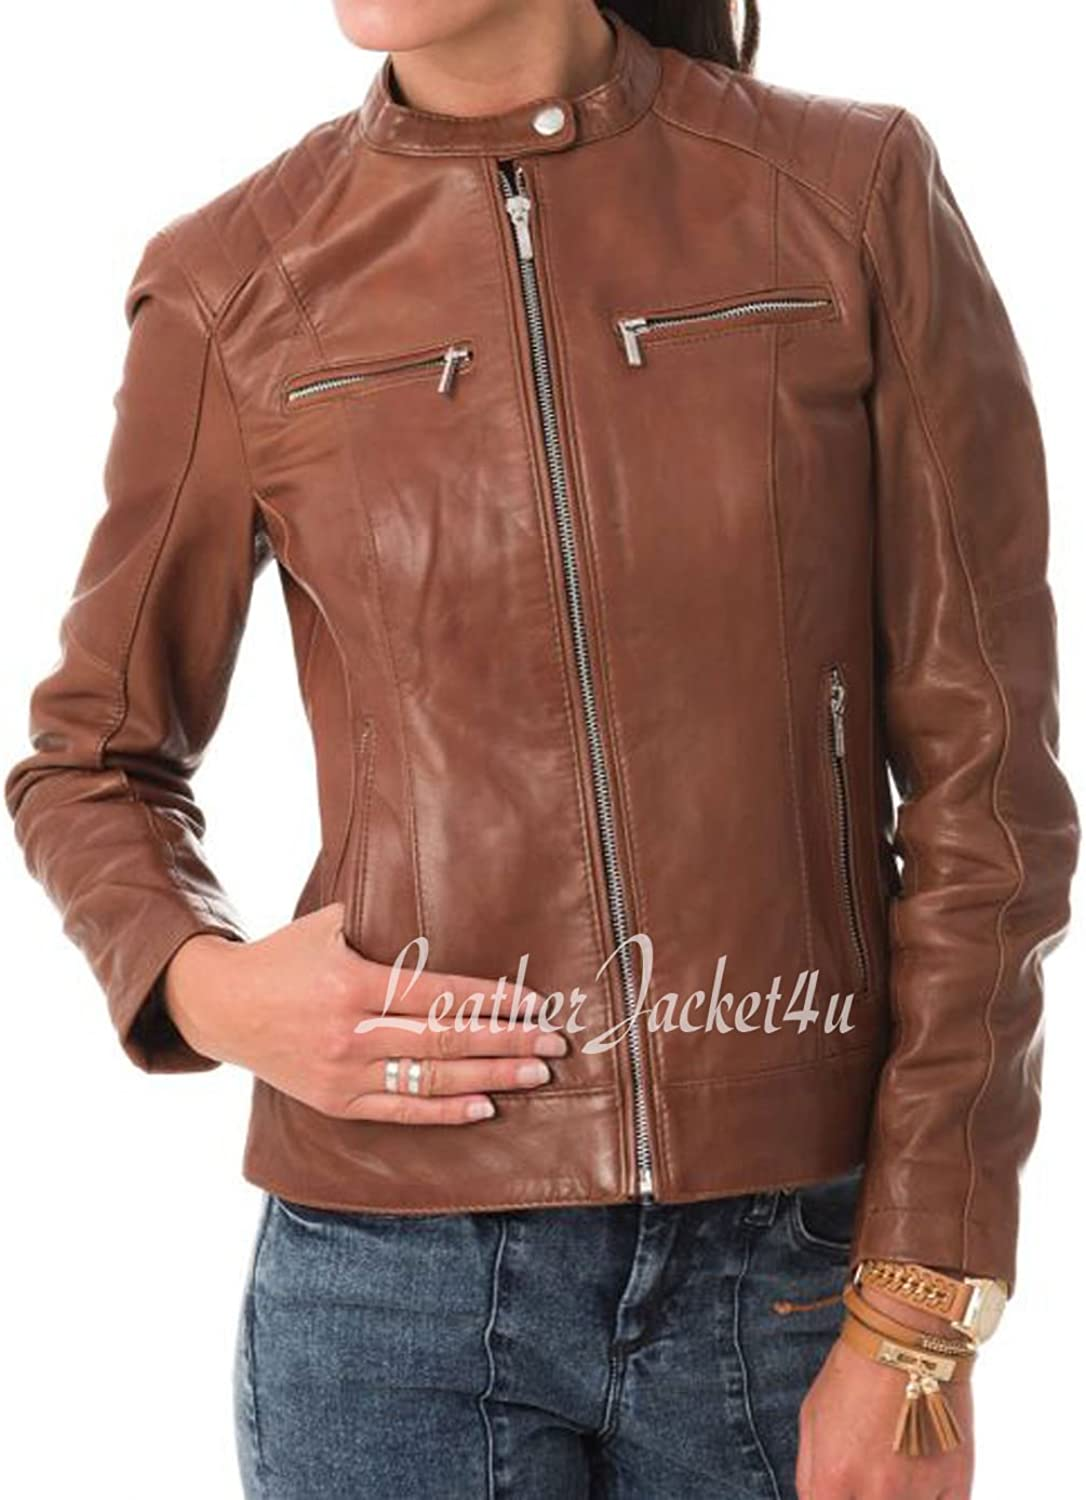 Women's Stylish Genuine Lambskin Leather Jacket 24